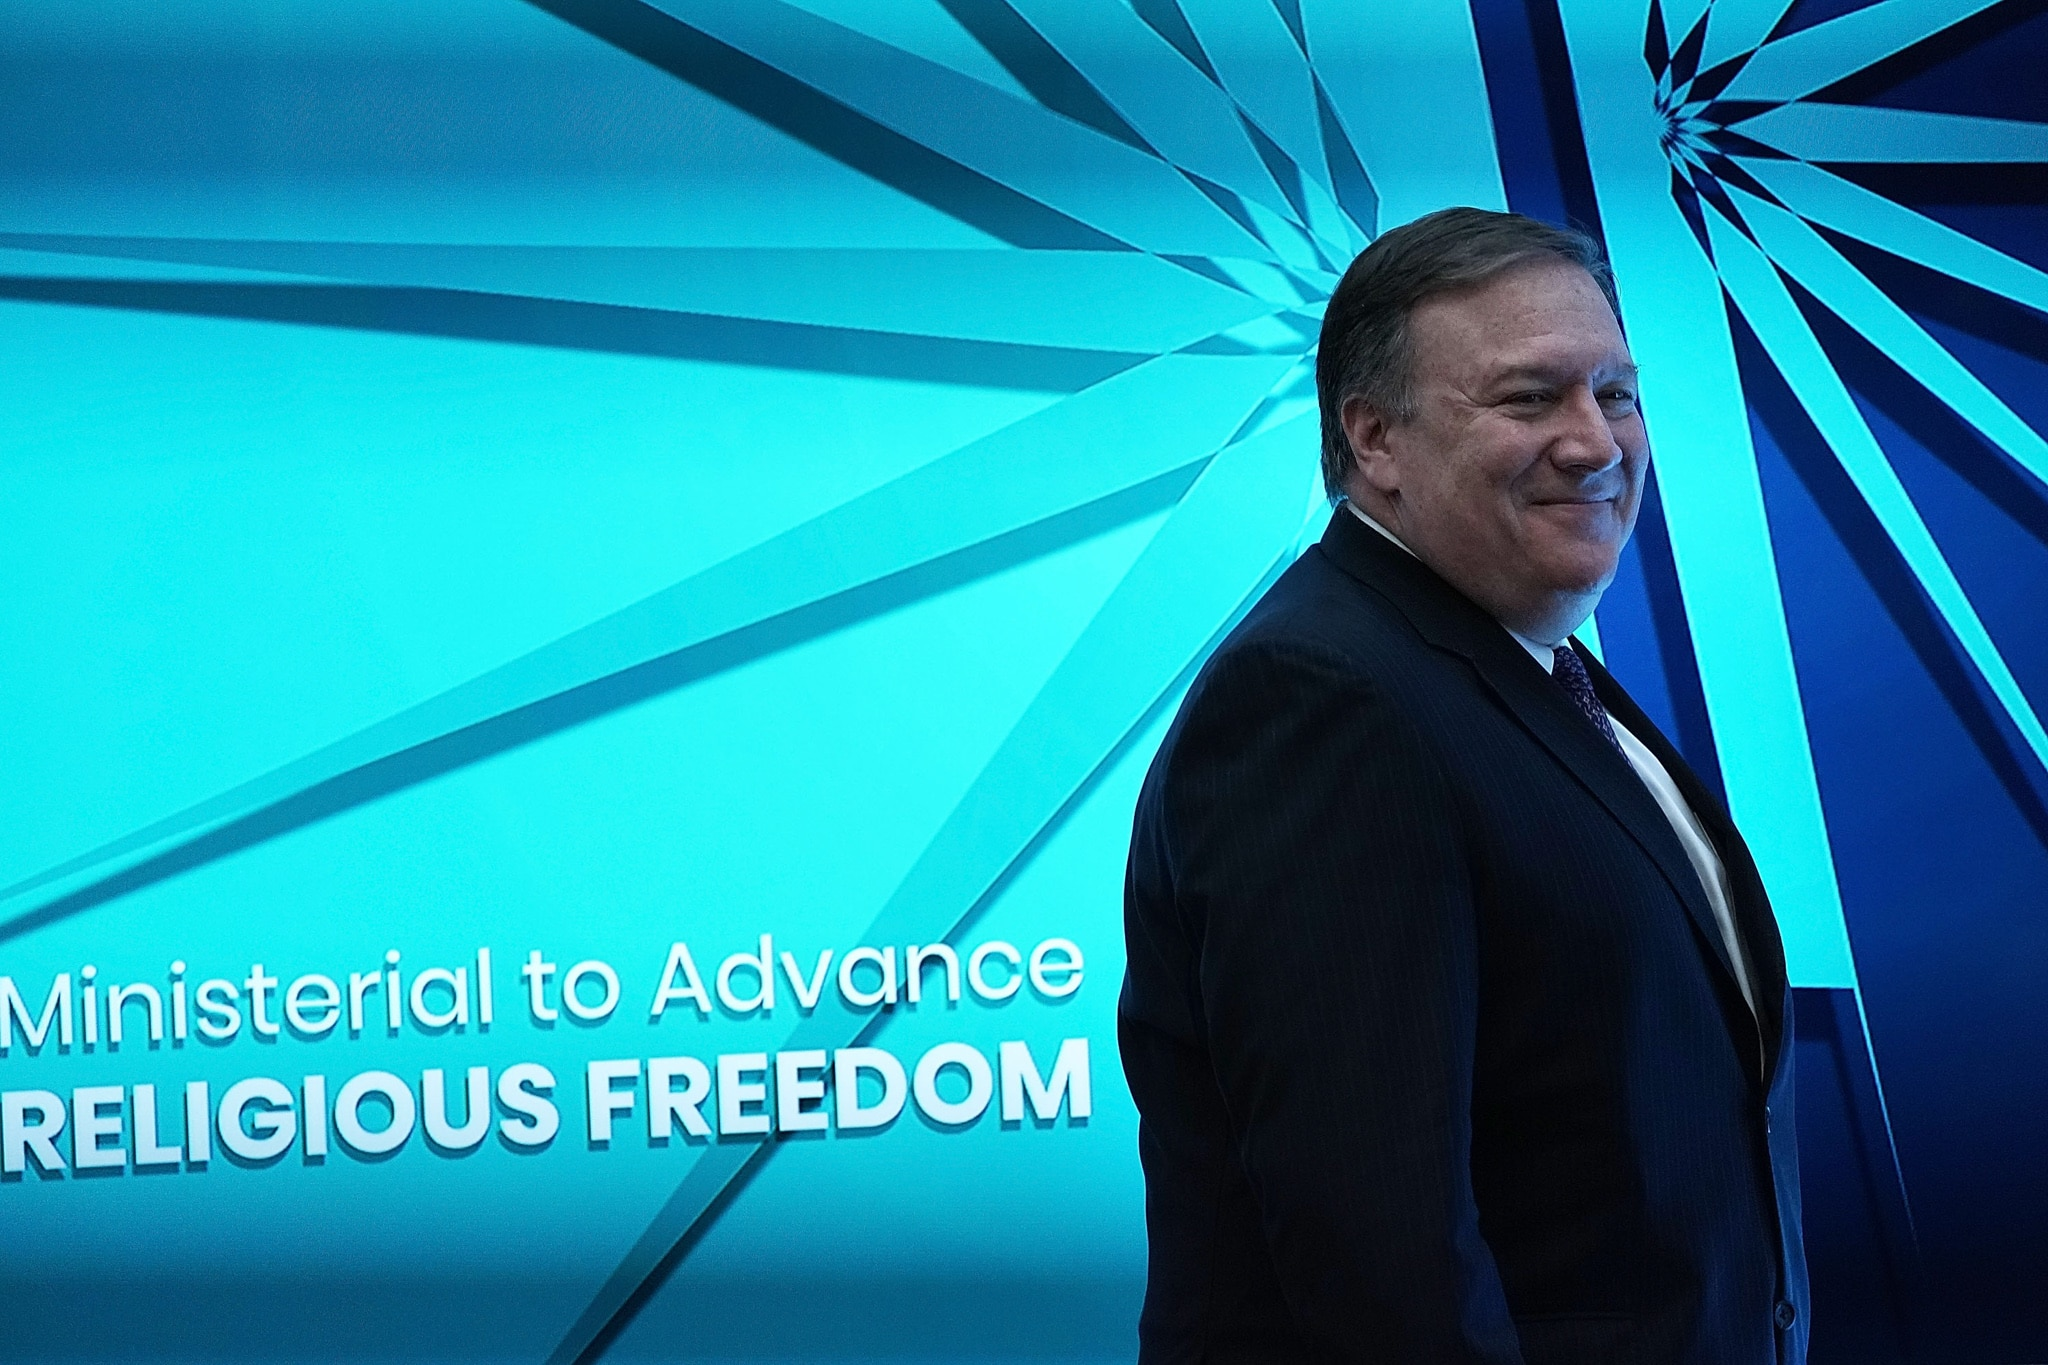 Mike Pompeo, souriant, devant un mur sur lequel est écrit Ministerial to Advance Religious Freedom (@ Alex Wong/Getty Images)